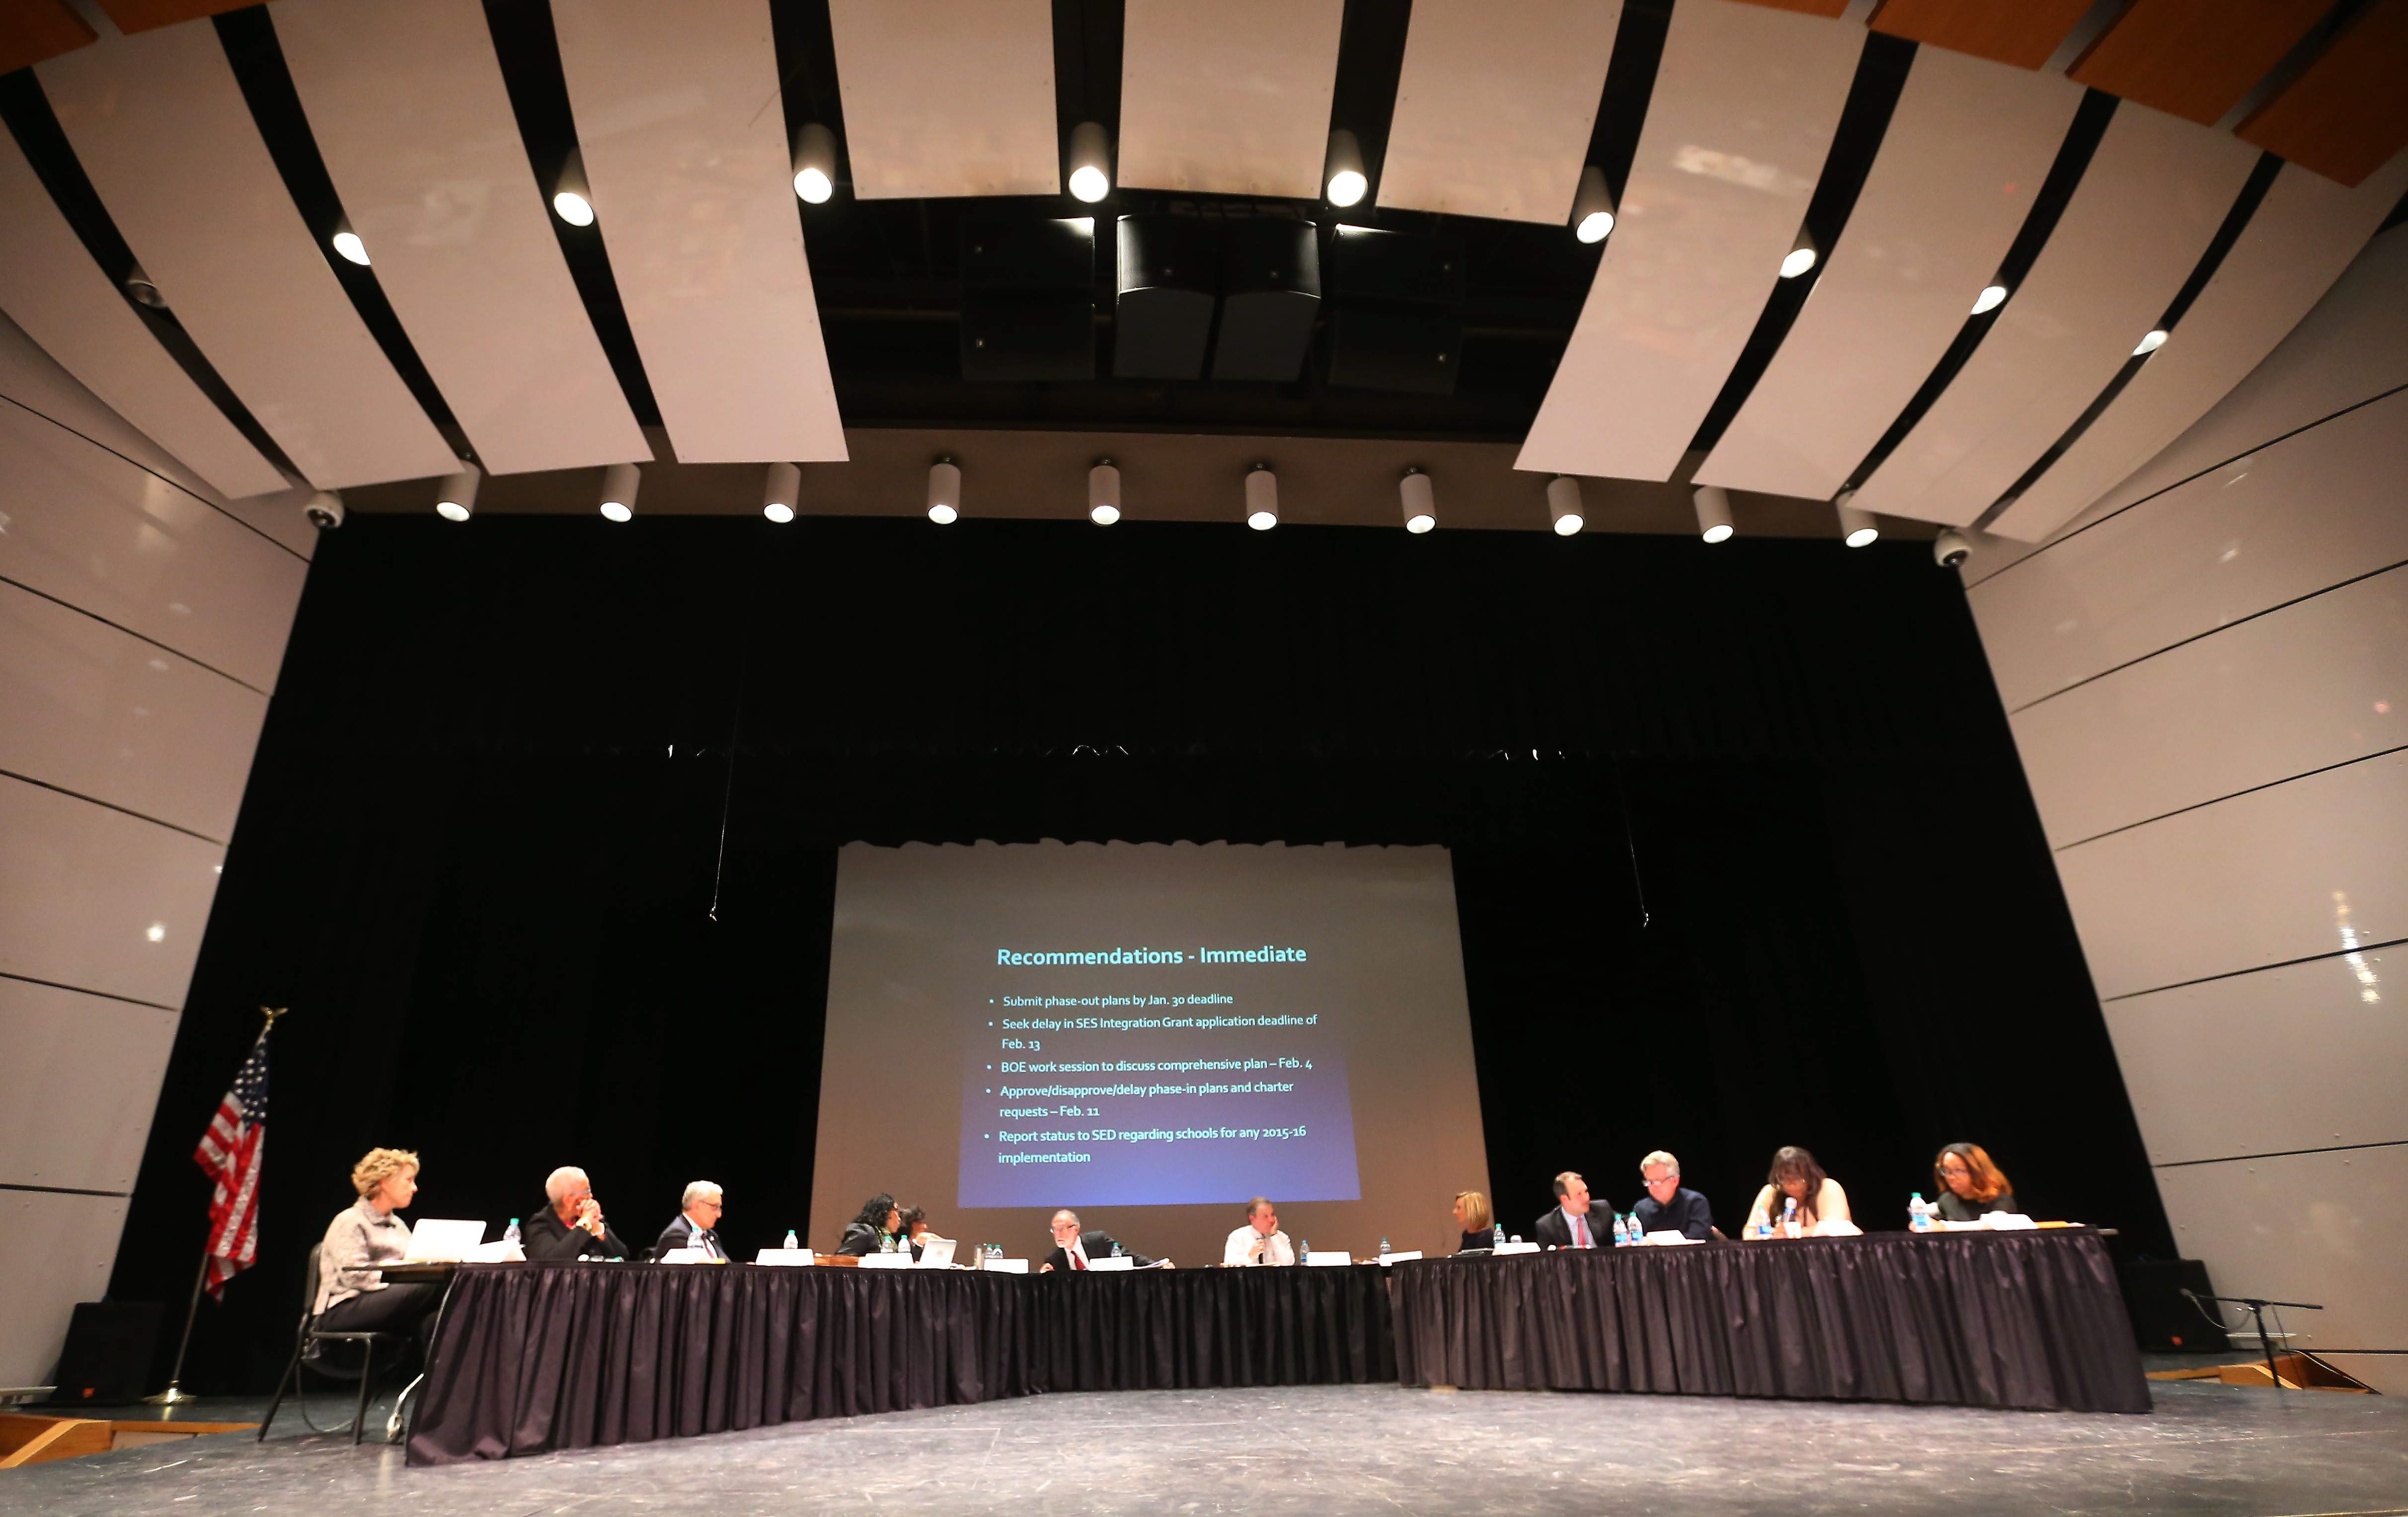 Buffalo School Board members run for election in May rather than November. A group of pastors and others are campaigning to move the election back to November, when voter turnout would be higher. (Mark Mulville/Buffalo News)